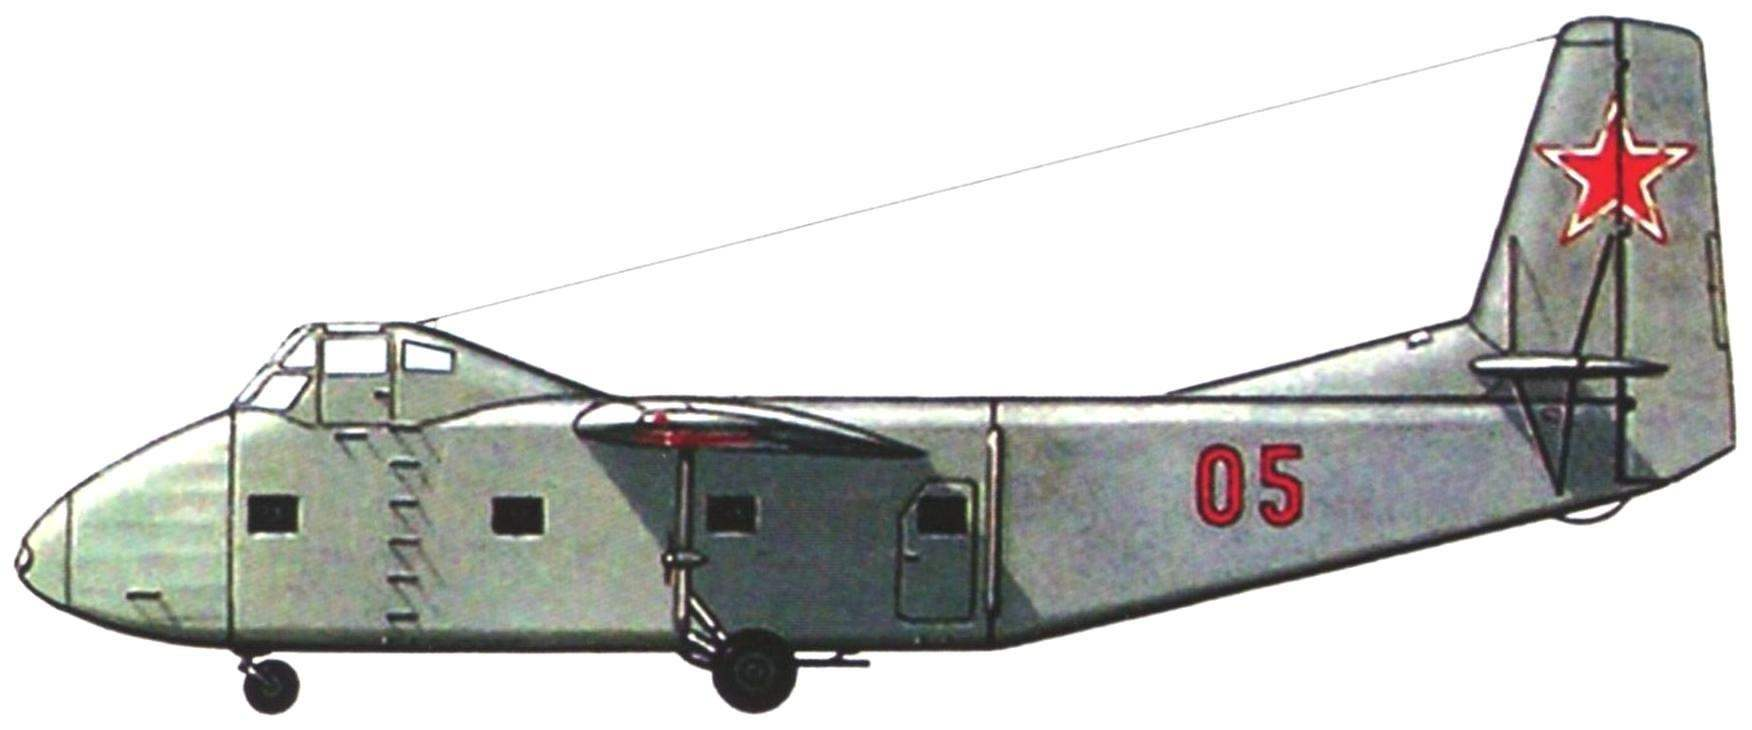 Serial glider, shown in aviation Day in Tushino in 1949 Glider had the final position of the front window of the cargo compartment. The Yak-14 was painted light gray on all surfaces, and had the tail number 05 red.